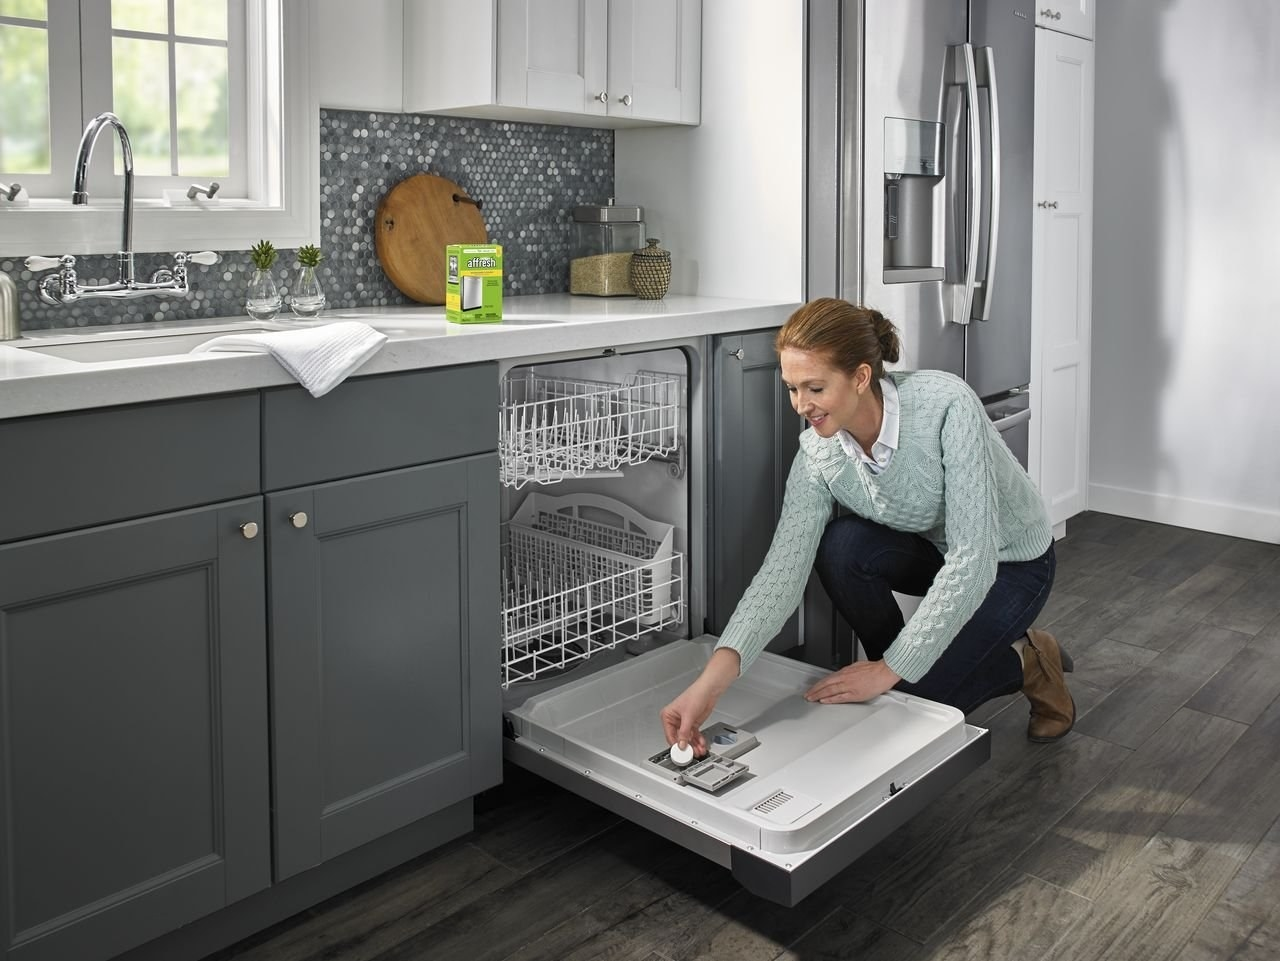 Model placing a tablet in the dishwasher